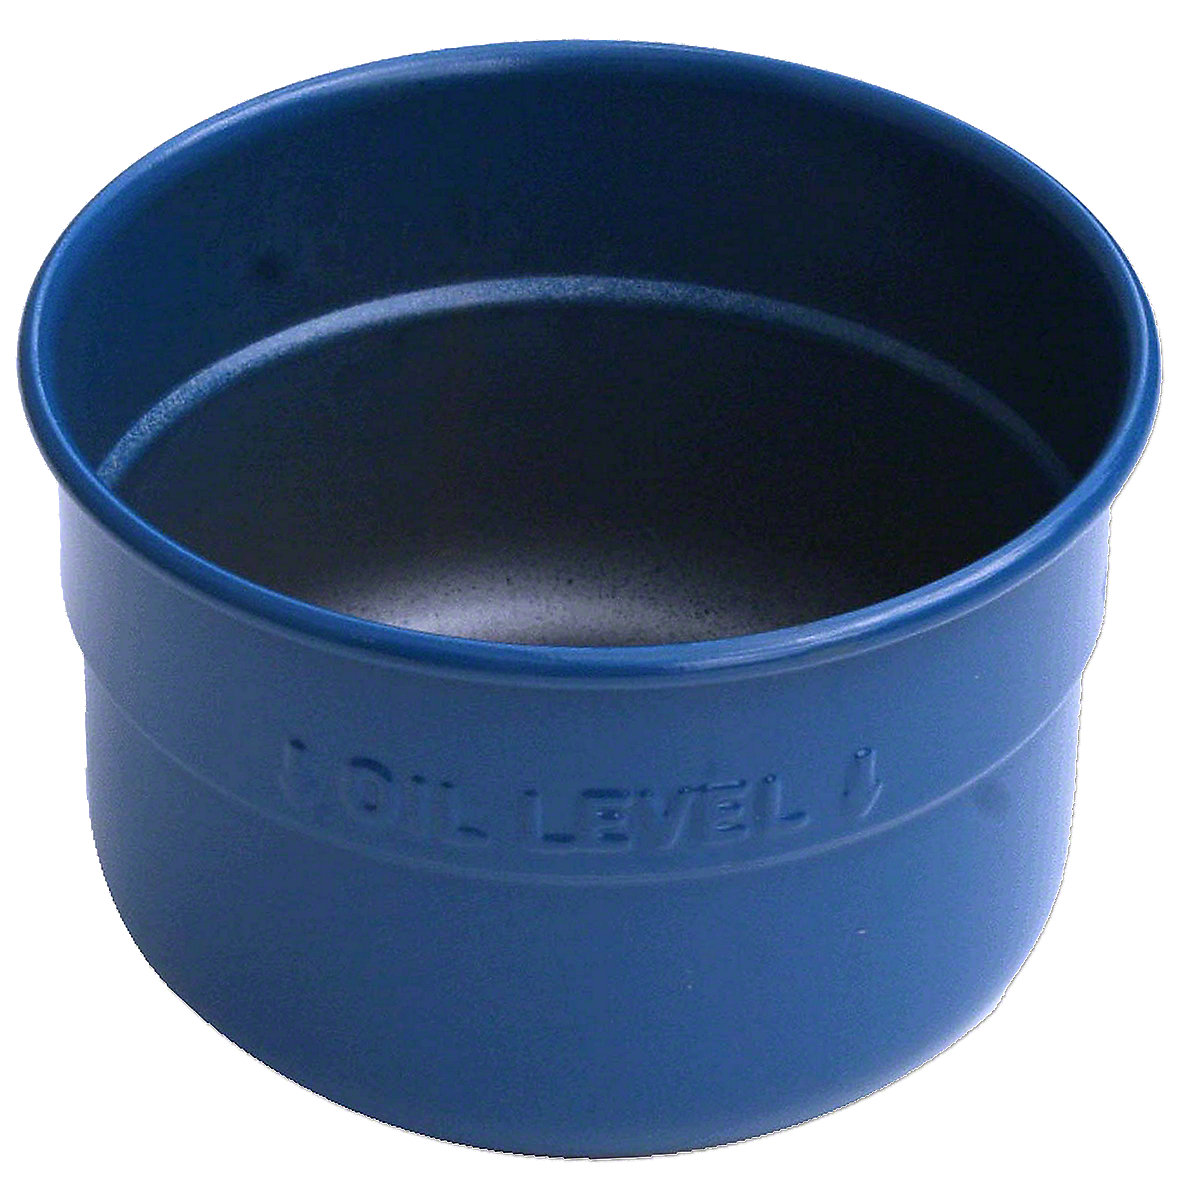 Air Cleaner Oil Cup For Allis Chalmers: D10, D12, D14.